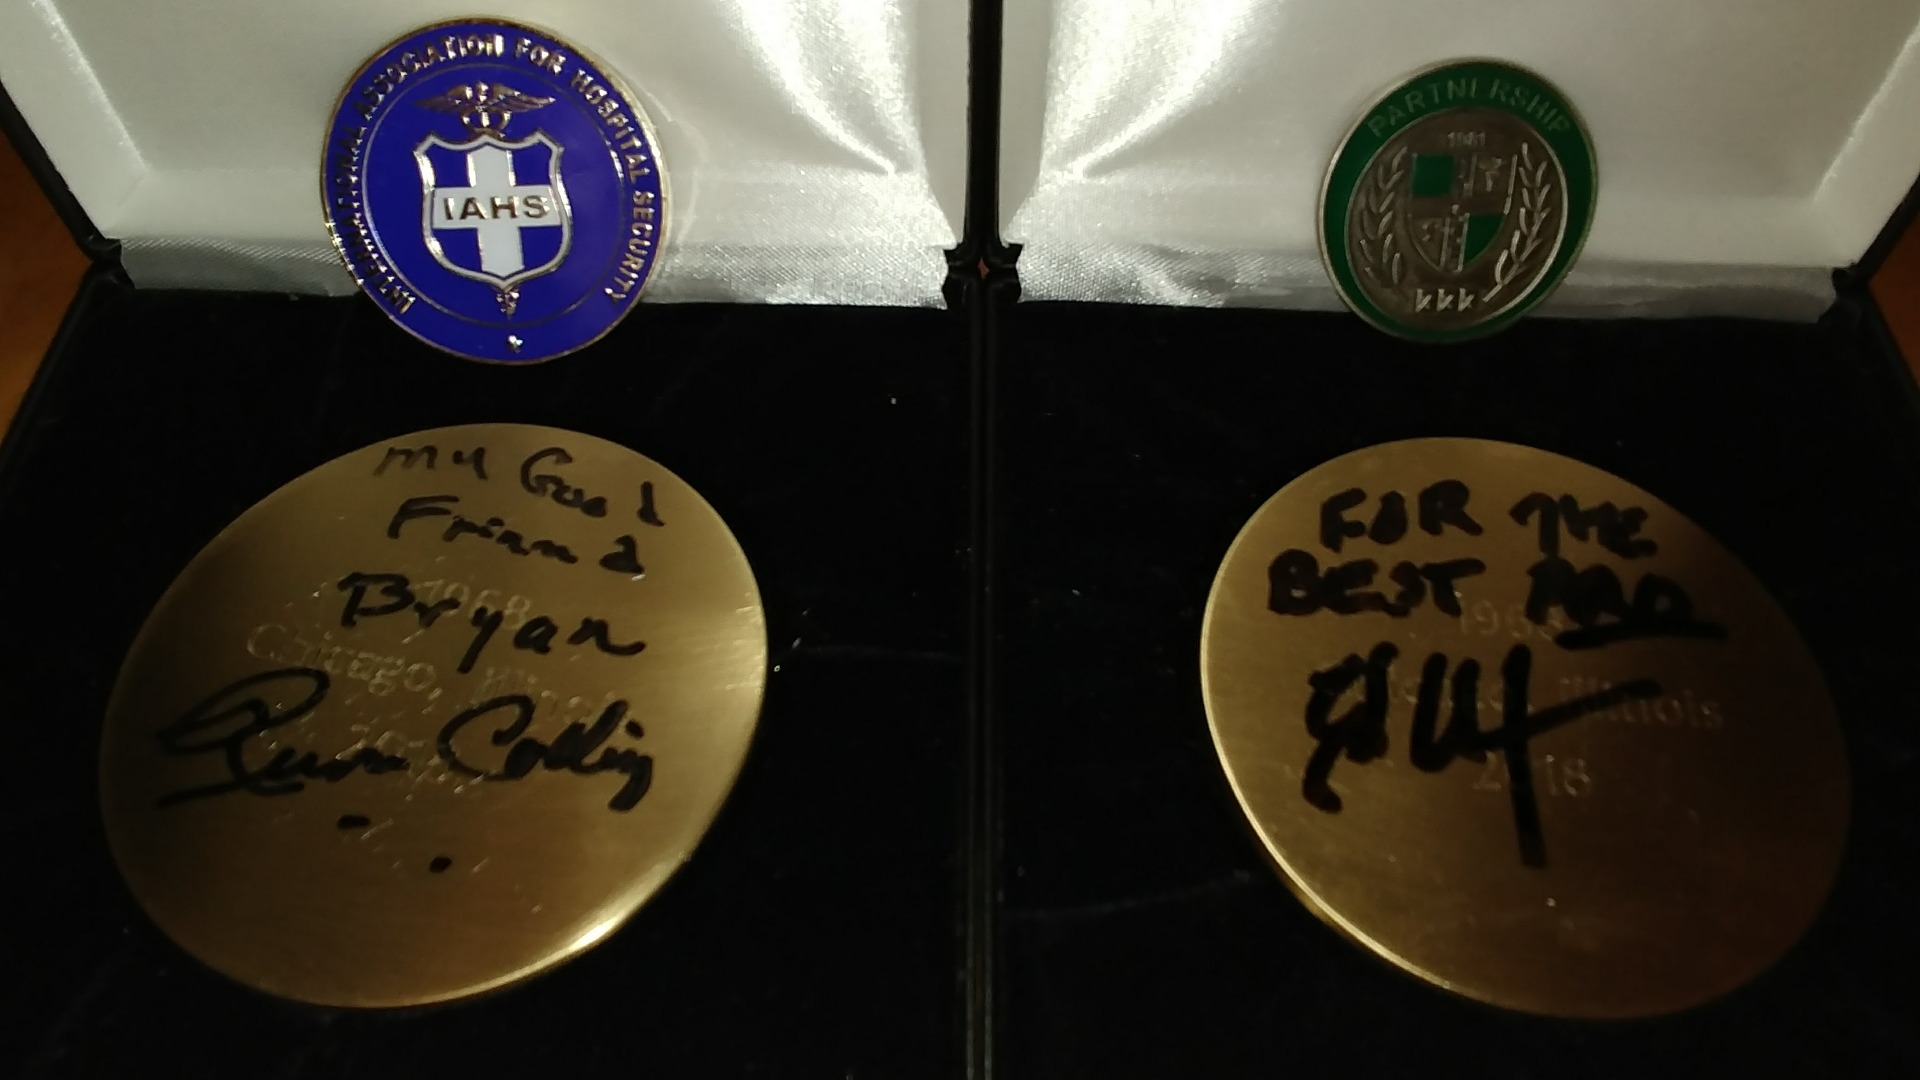 Coins signed by Russ Colling and Ed Stedman